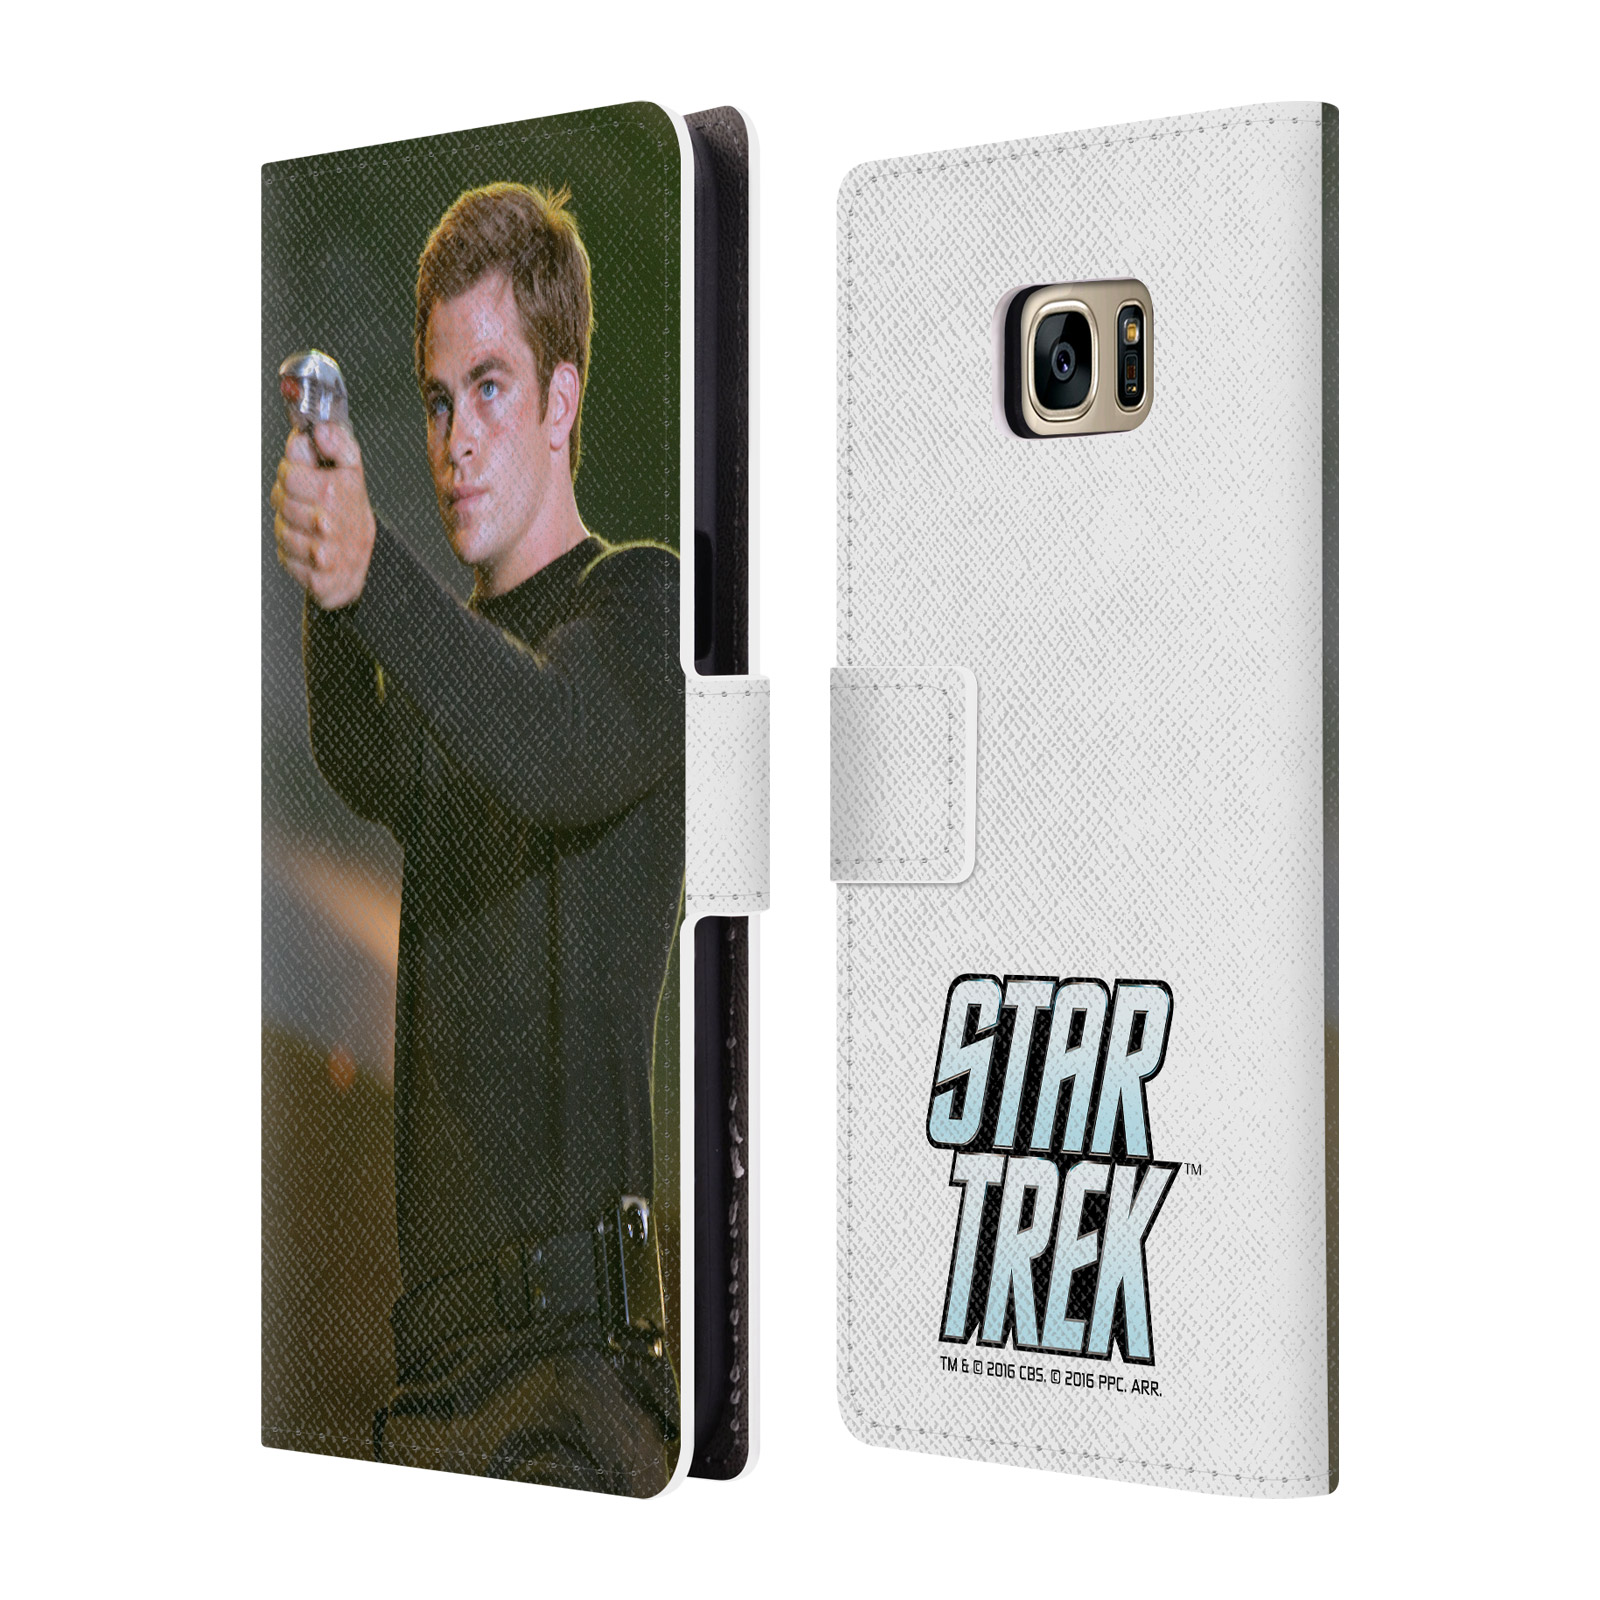 OFFICIAL STAR TREK MOVIE STILLS REBOOT XI LEATHER BOOK WALLET CASE COVER FOR SAMSUNG PHONES 1